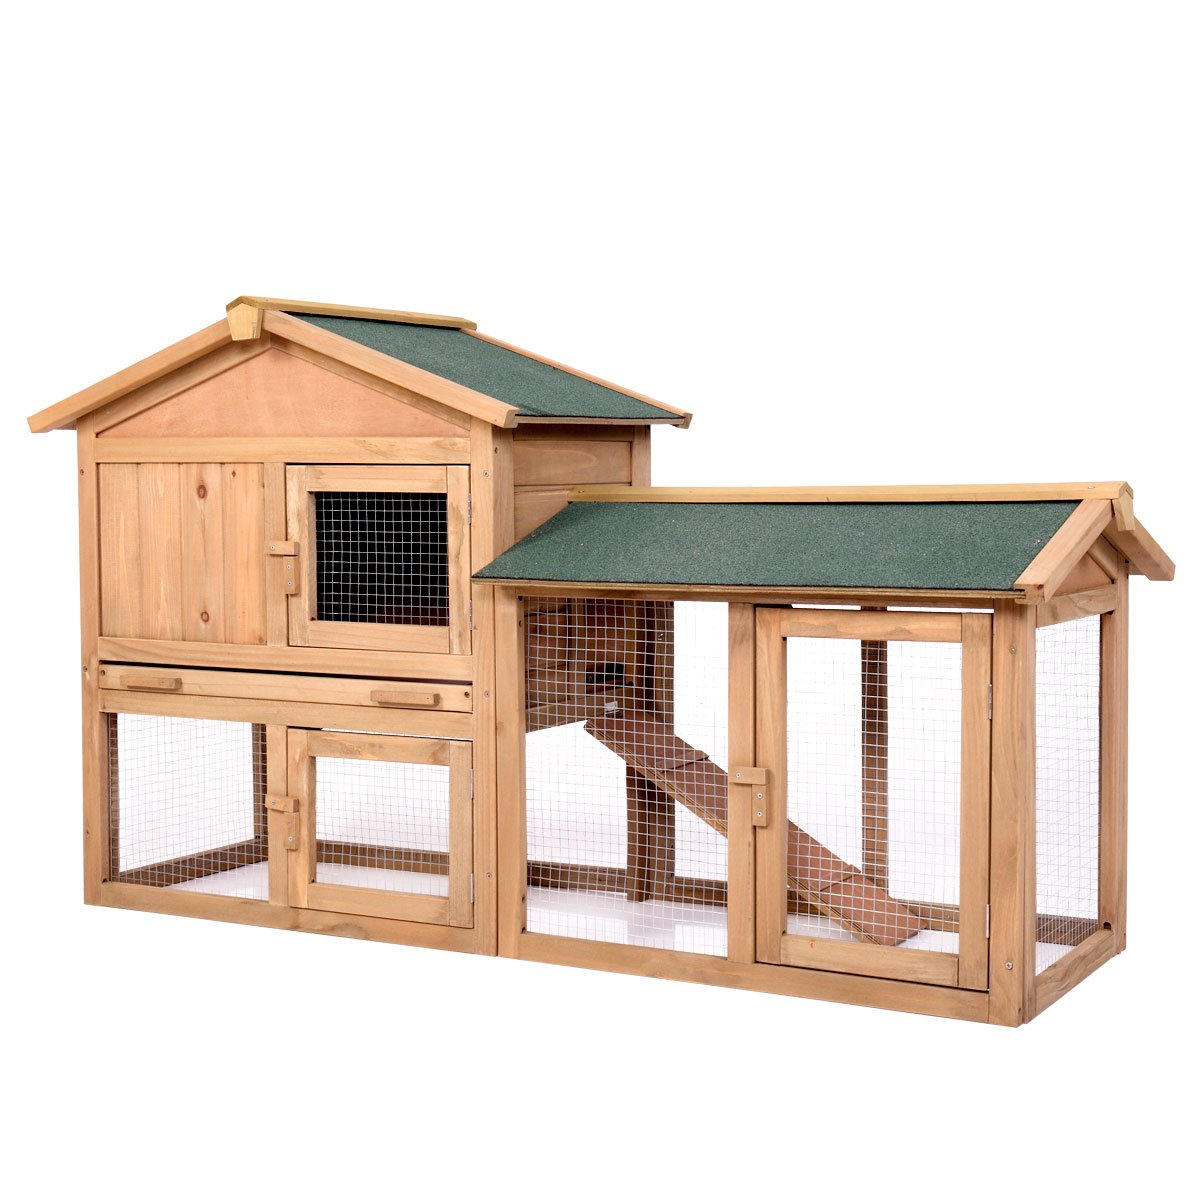 P PURLOVE Wood Bunny Hutch 54'' Large 2 Story Outdoor Bunny House with Removable Tray & Ramp, Backyard Garden Rabbit Cage/Guinea Pig House/Chicken Coop Nesting Box for Small Animals